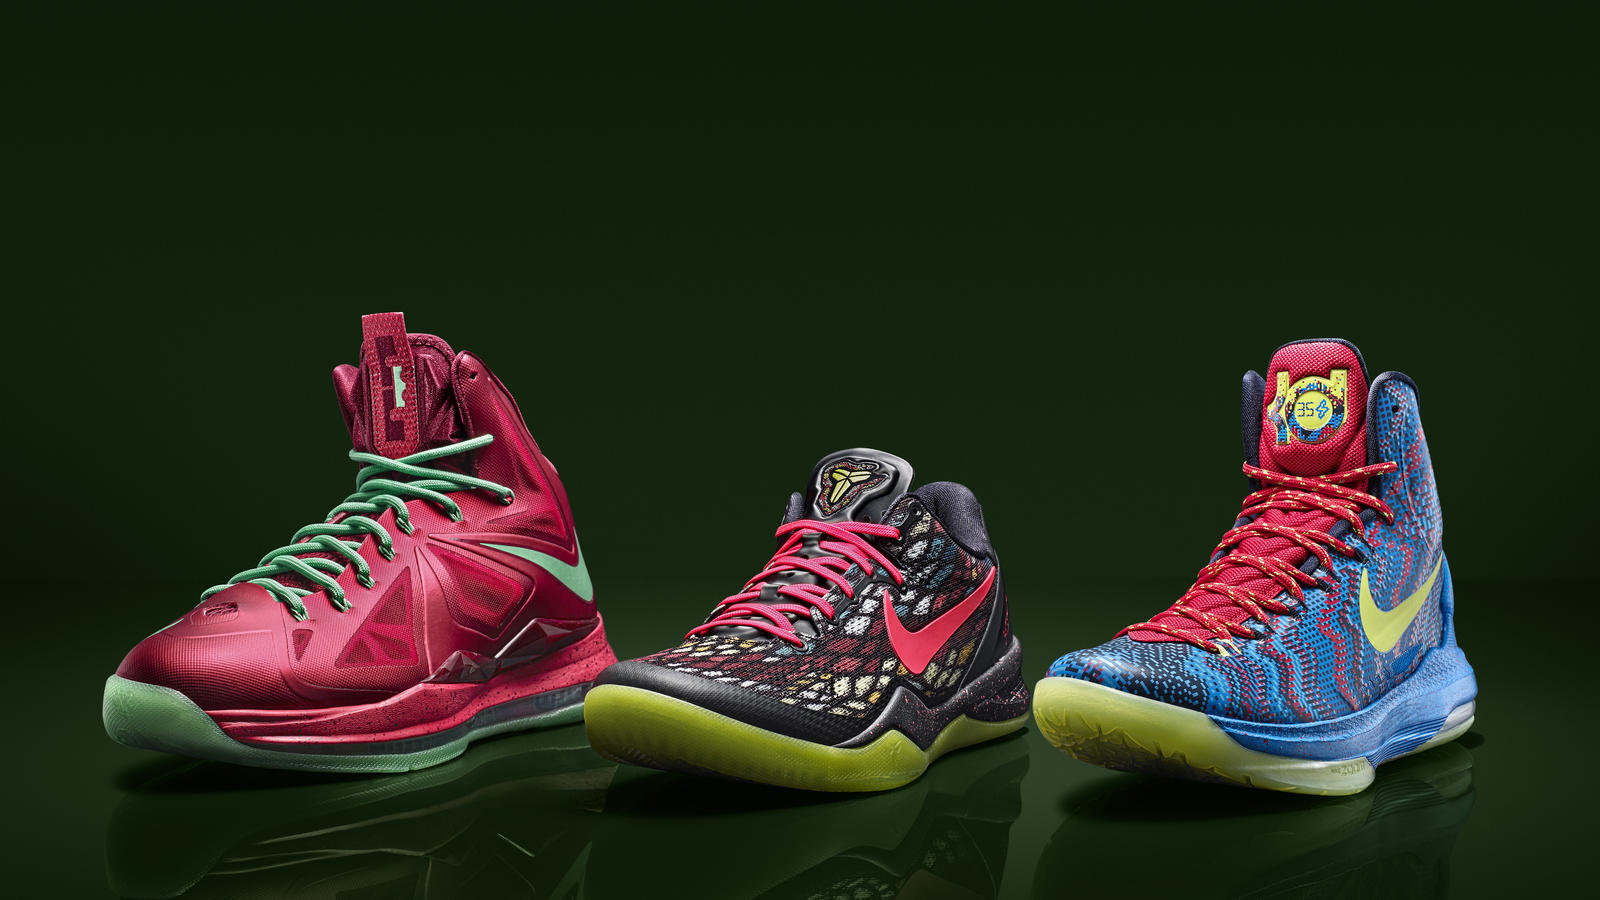 meet 2db83 6d272 Xmas colorway group shot. KOBE 8 SYSTEM Xmas colorway.  LEBRON X Xmas colorway